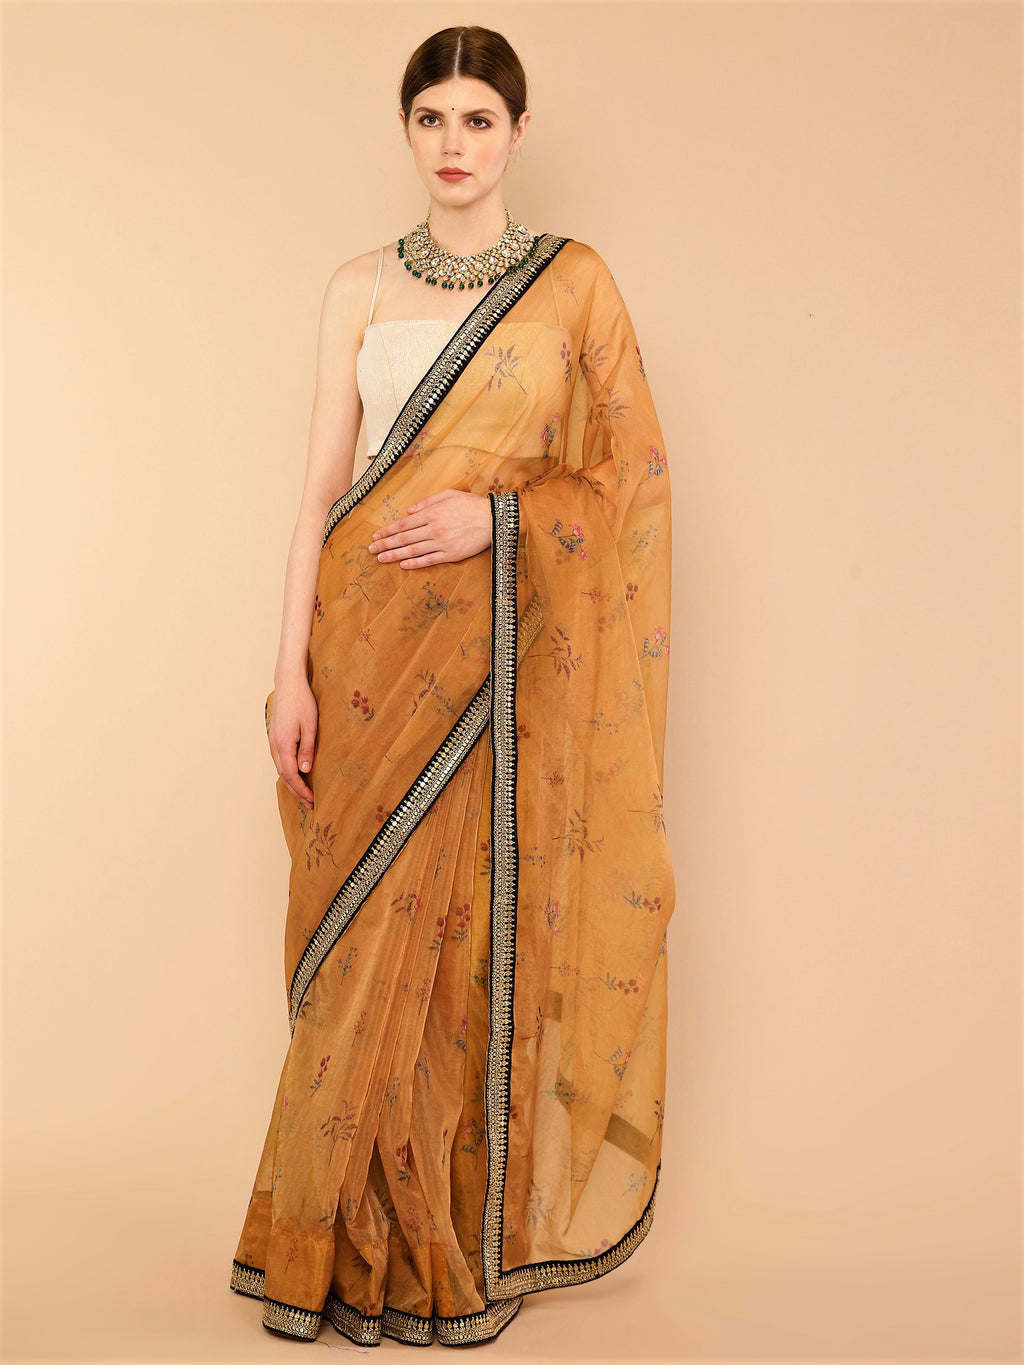 Mustard Yellow floral Pure Organza Silk Saree with Black Velvet Embroidered Border